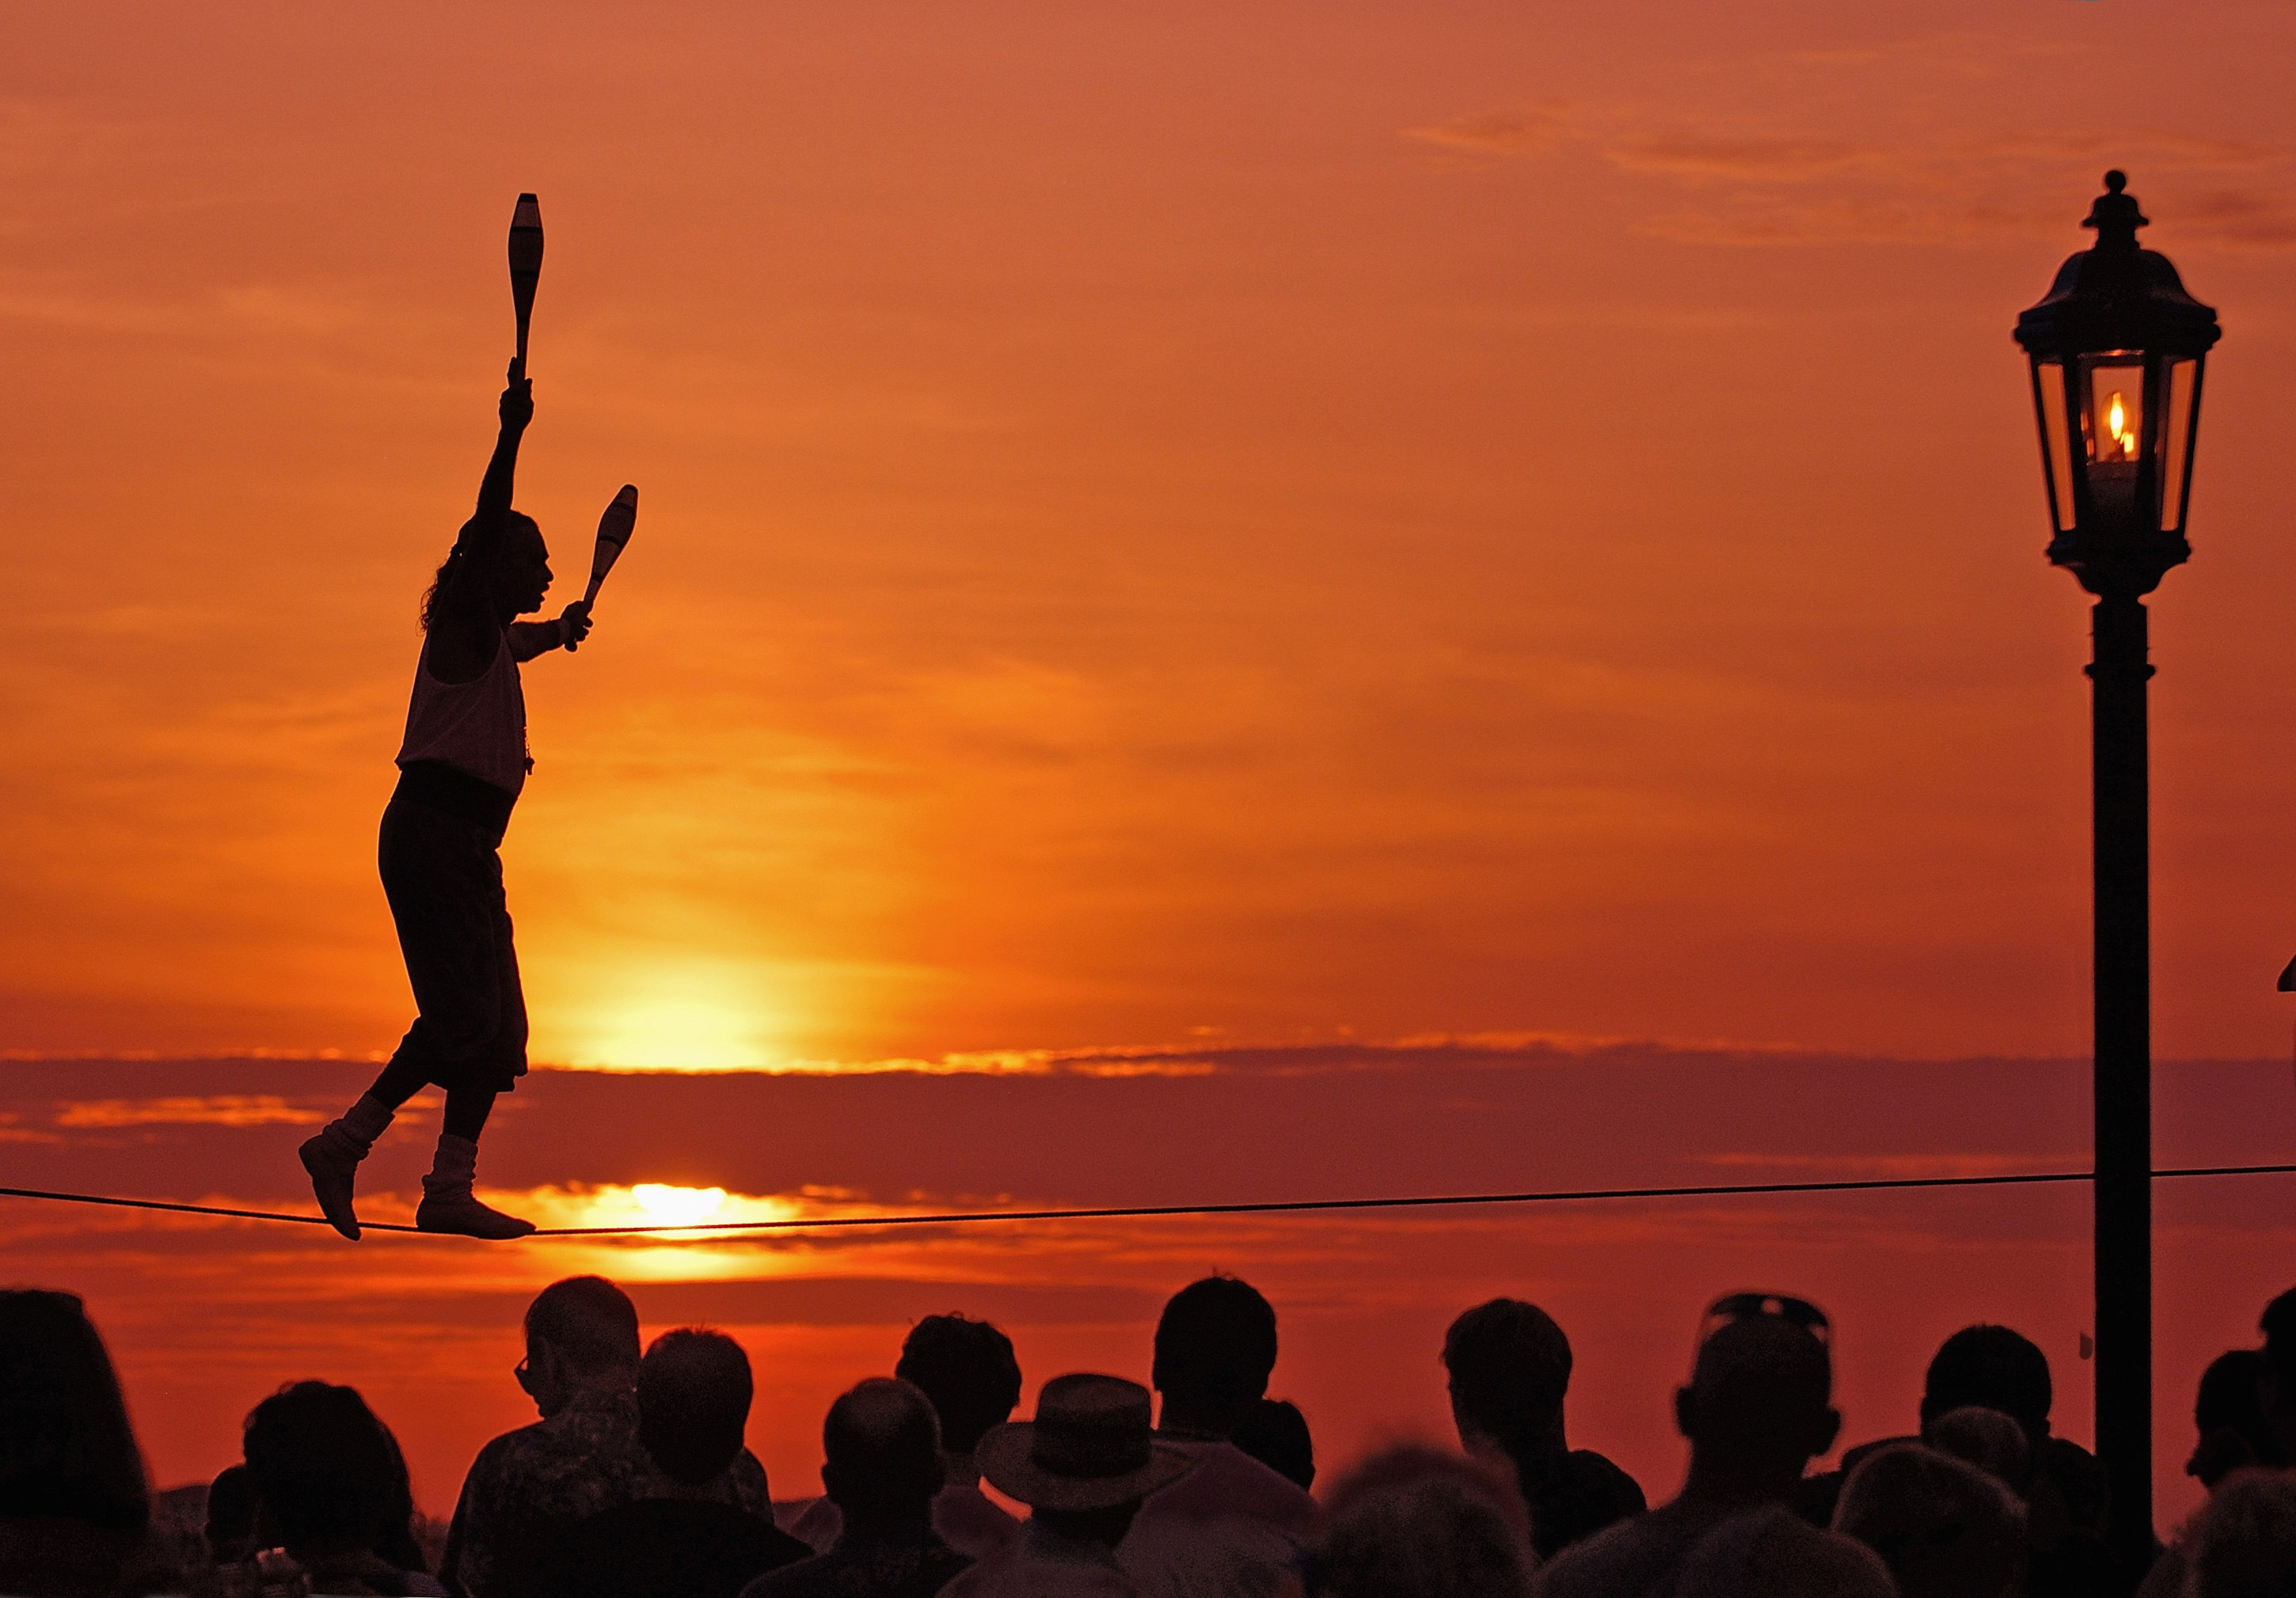 Busker Will Soto walks a tightrope at the sunset celebration in Key West, Florida, in this file photo taken in 2007. The sunset celebration at Mallory Square is a daily ritual for visitors to this subtropical island at the bottom of the Florida Keys. The Florida Keys are the end of the road, where the legendary US Route 1 stops for the ocean at mile zero, a classic American road trip.